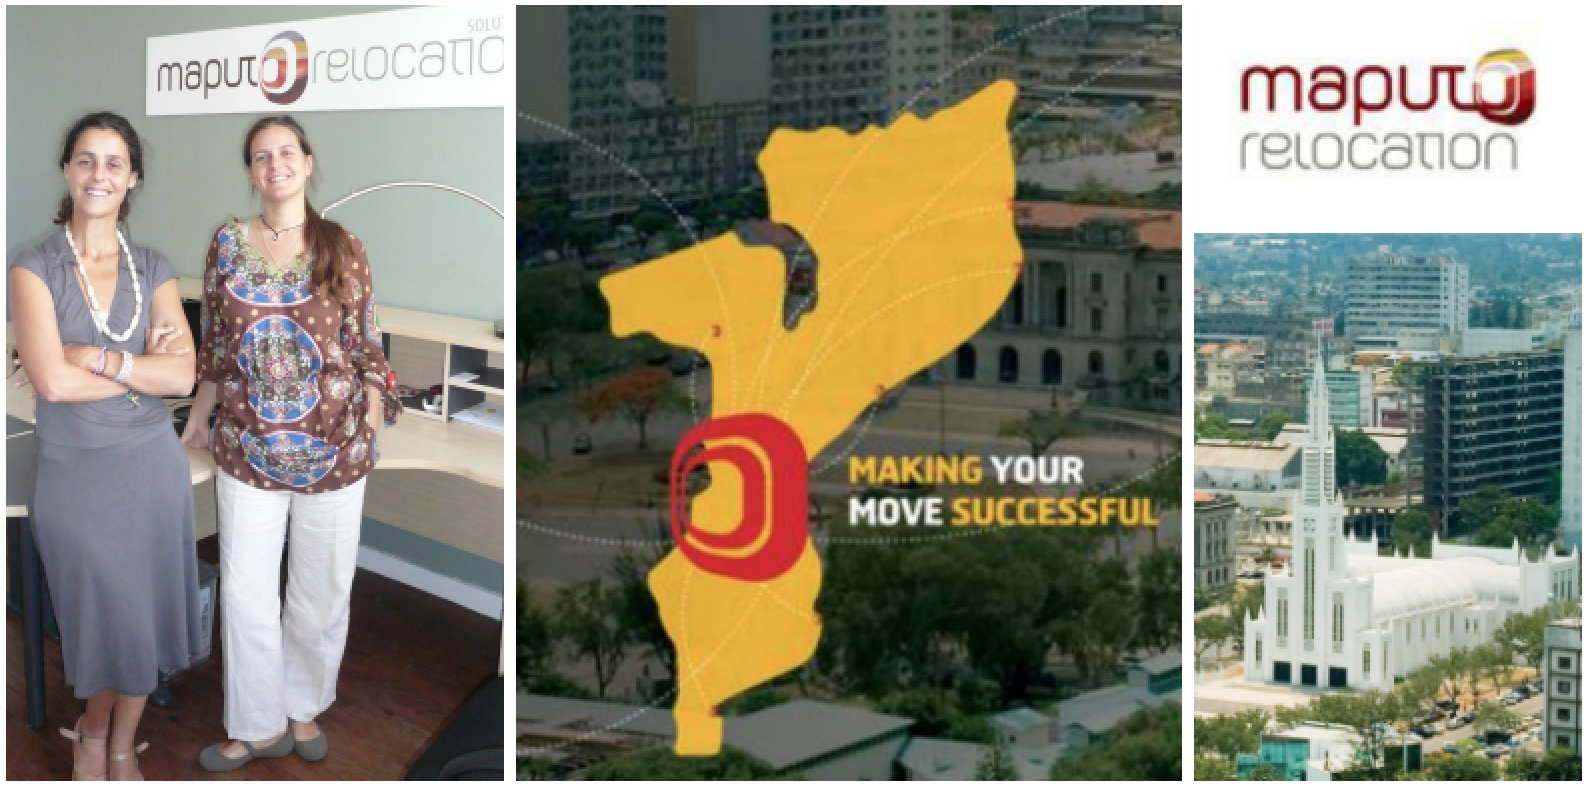 Marta Pinto Coelho Roff is the co-founder of Maputo Relocation Solutions (Mozambique)